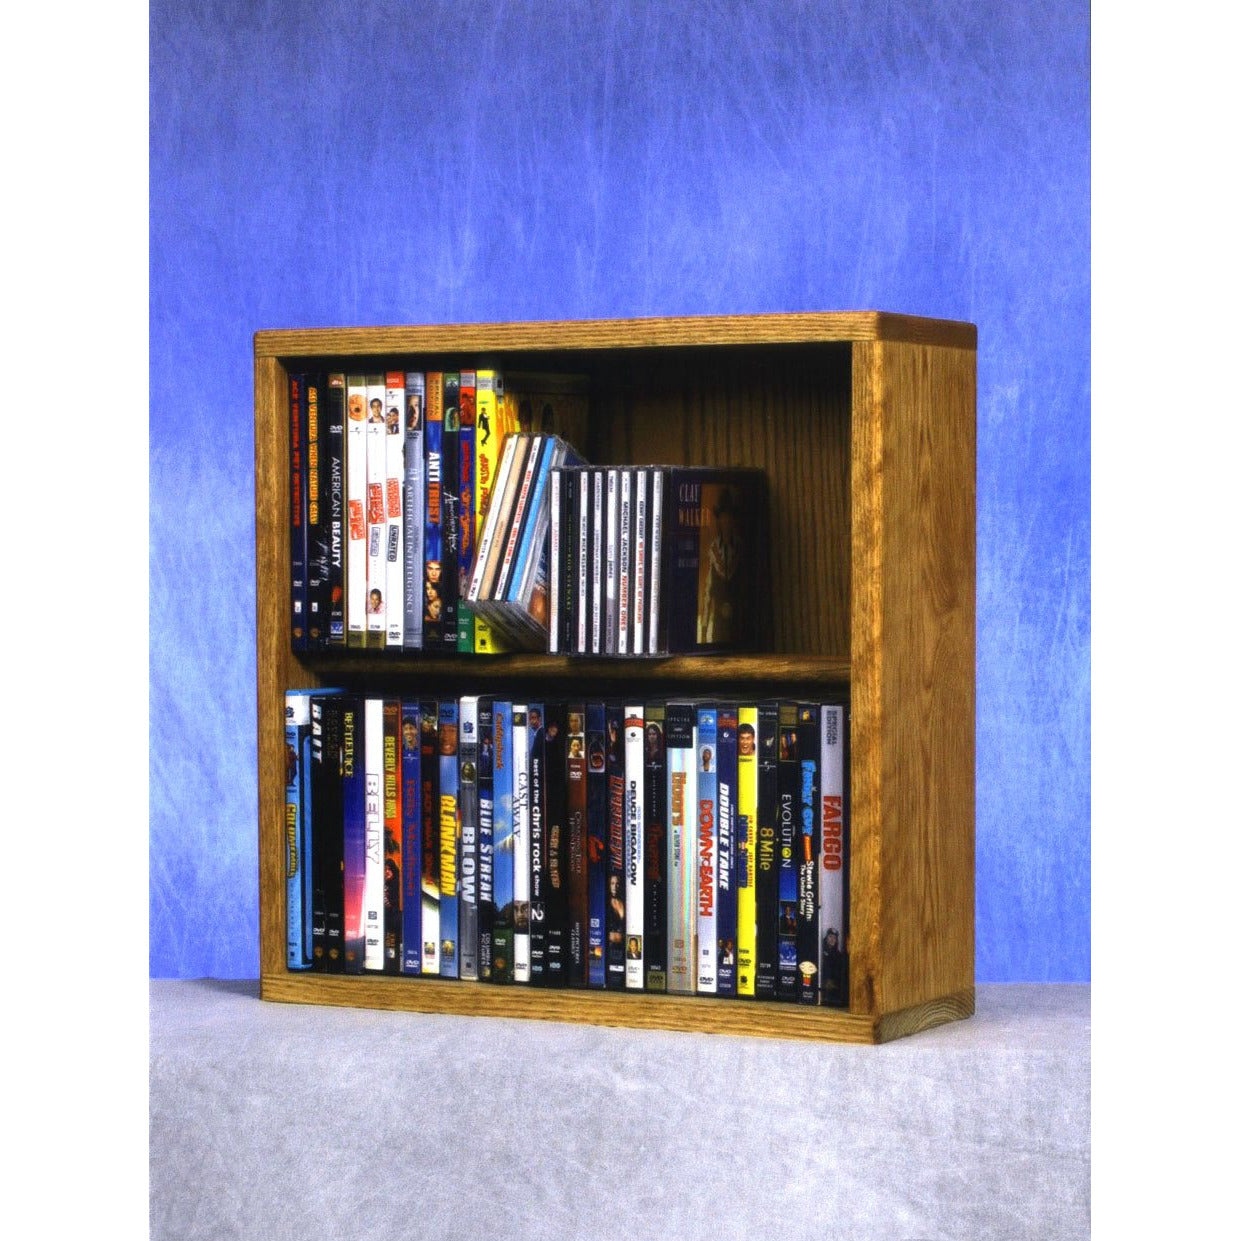 Model 215-18 CD/DVD/VHS Combination Rack